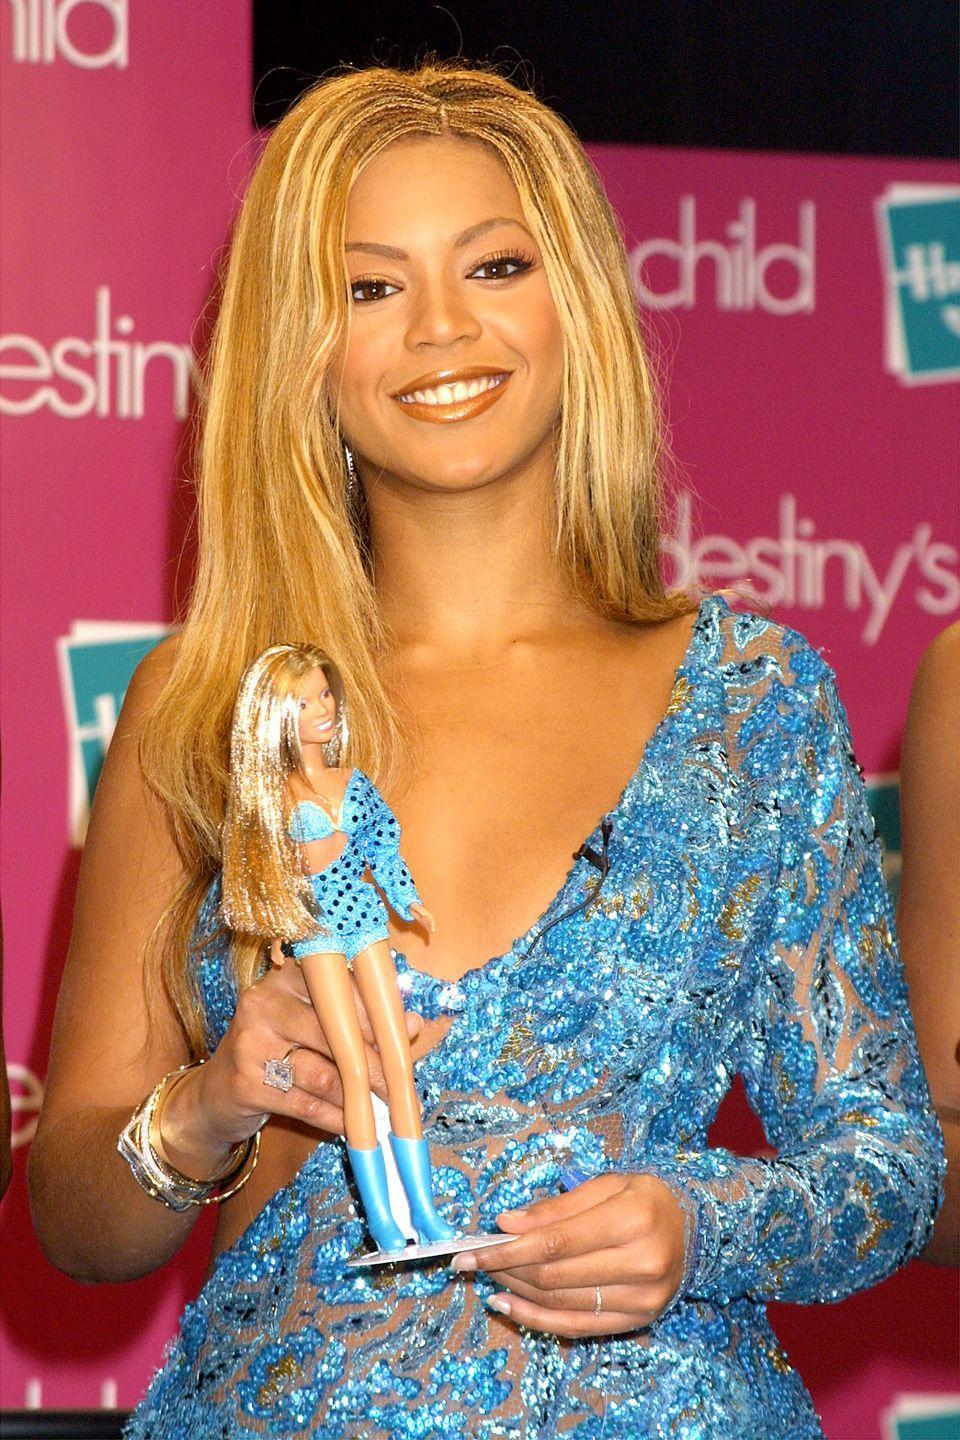 <p>In the late 1990s and early 2000s, the world knew Beyonce as the lead singer of Destiny's Child. Before she became half of one of Hollywood's biggest power couples, she was just Bey. And while she has always been a superstar, she wasn't what she is today. </p>